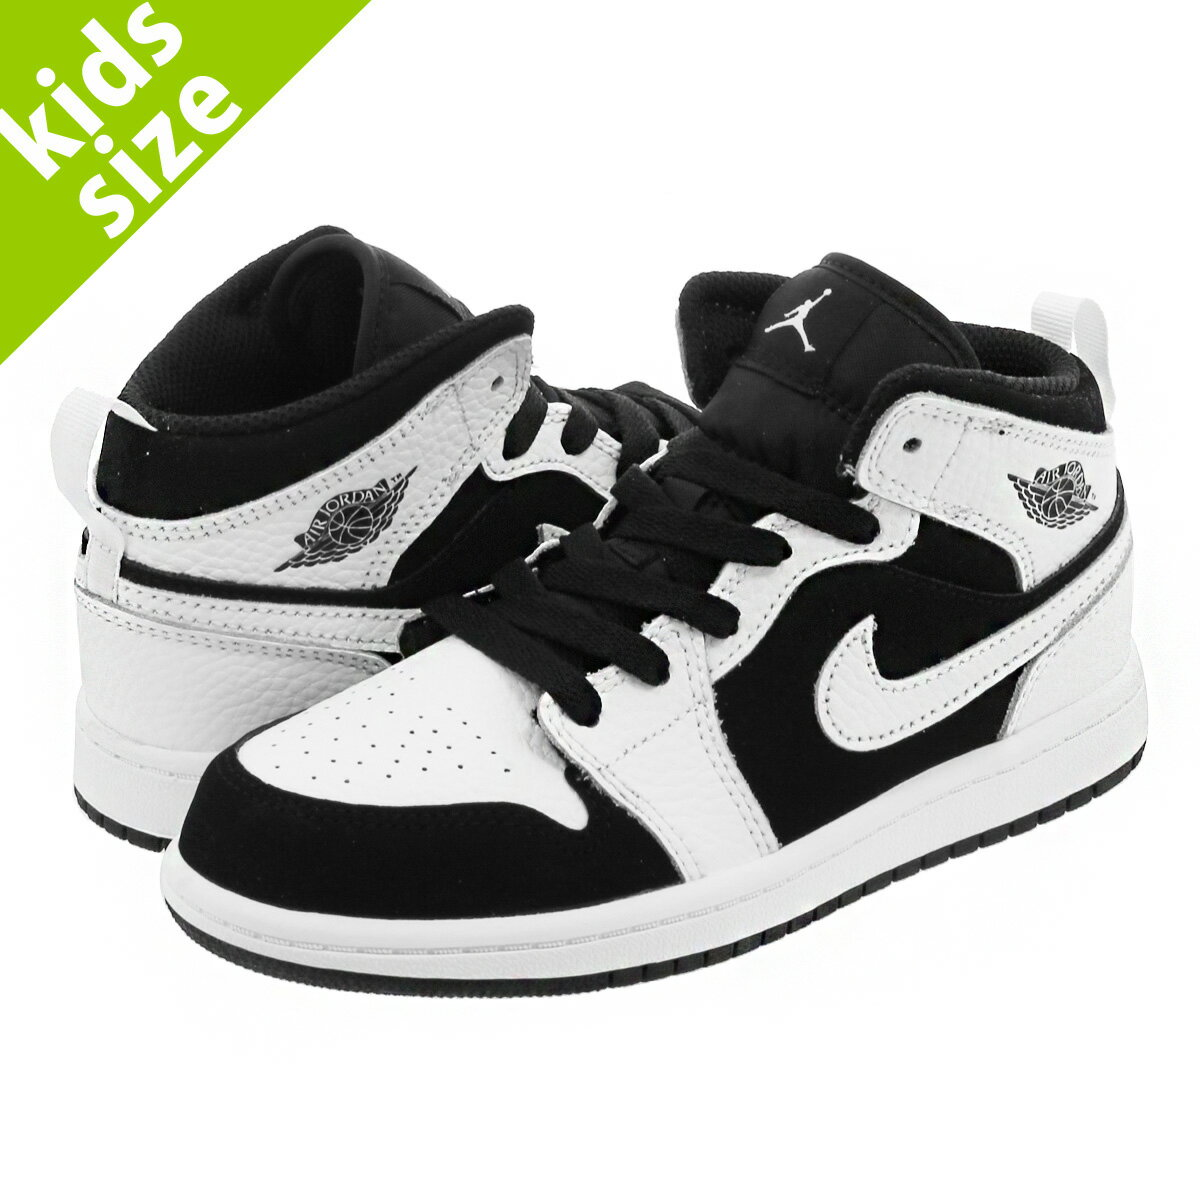 靴, スニーカー 16-22cm NIKE AIR JORDAN 1 MID PS 1 PS WHITEBLACK 640734-113